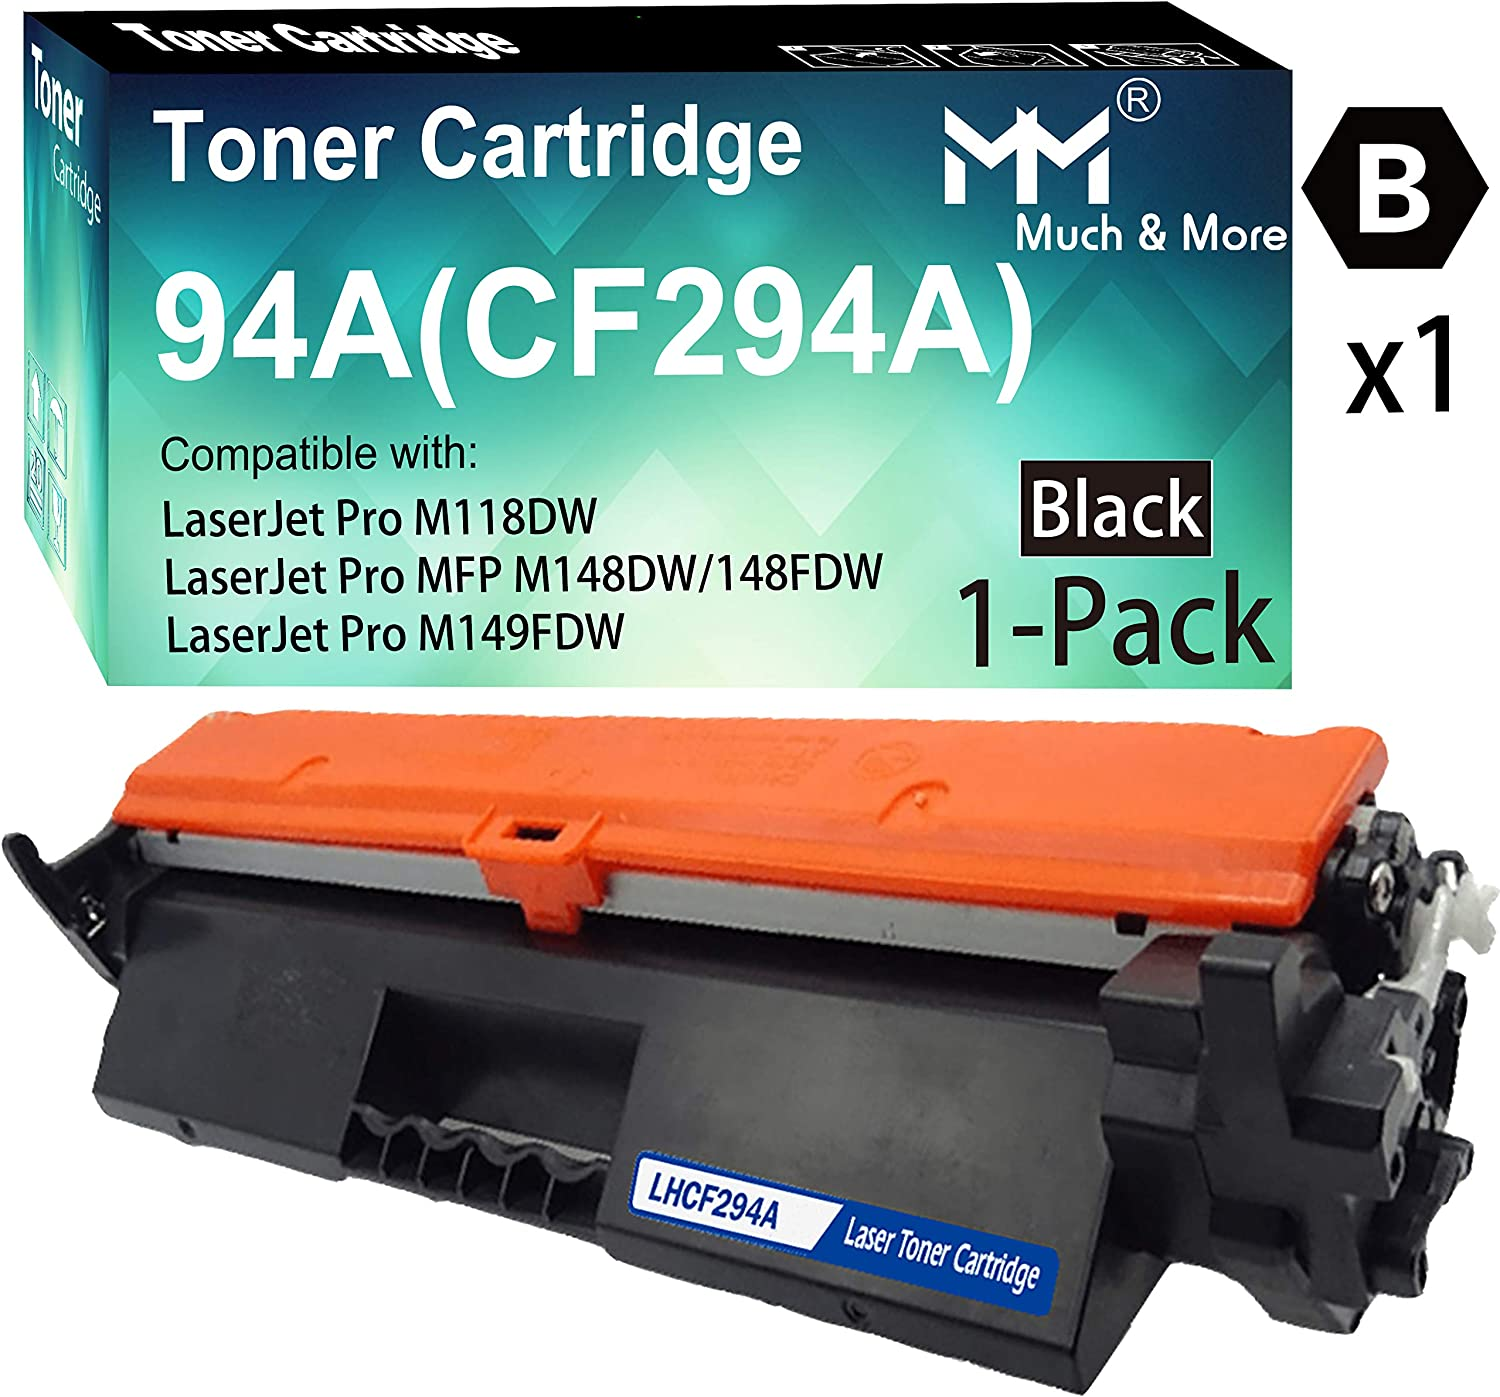 (1-Pack, Black) Compatible 294A 94A Toner Cartridge CF294A Used for HP Laserjet Pro M118dw MFP M148dw MFP M148fdw M149fdw Printer, by MuchMore